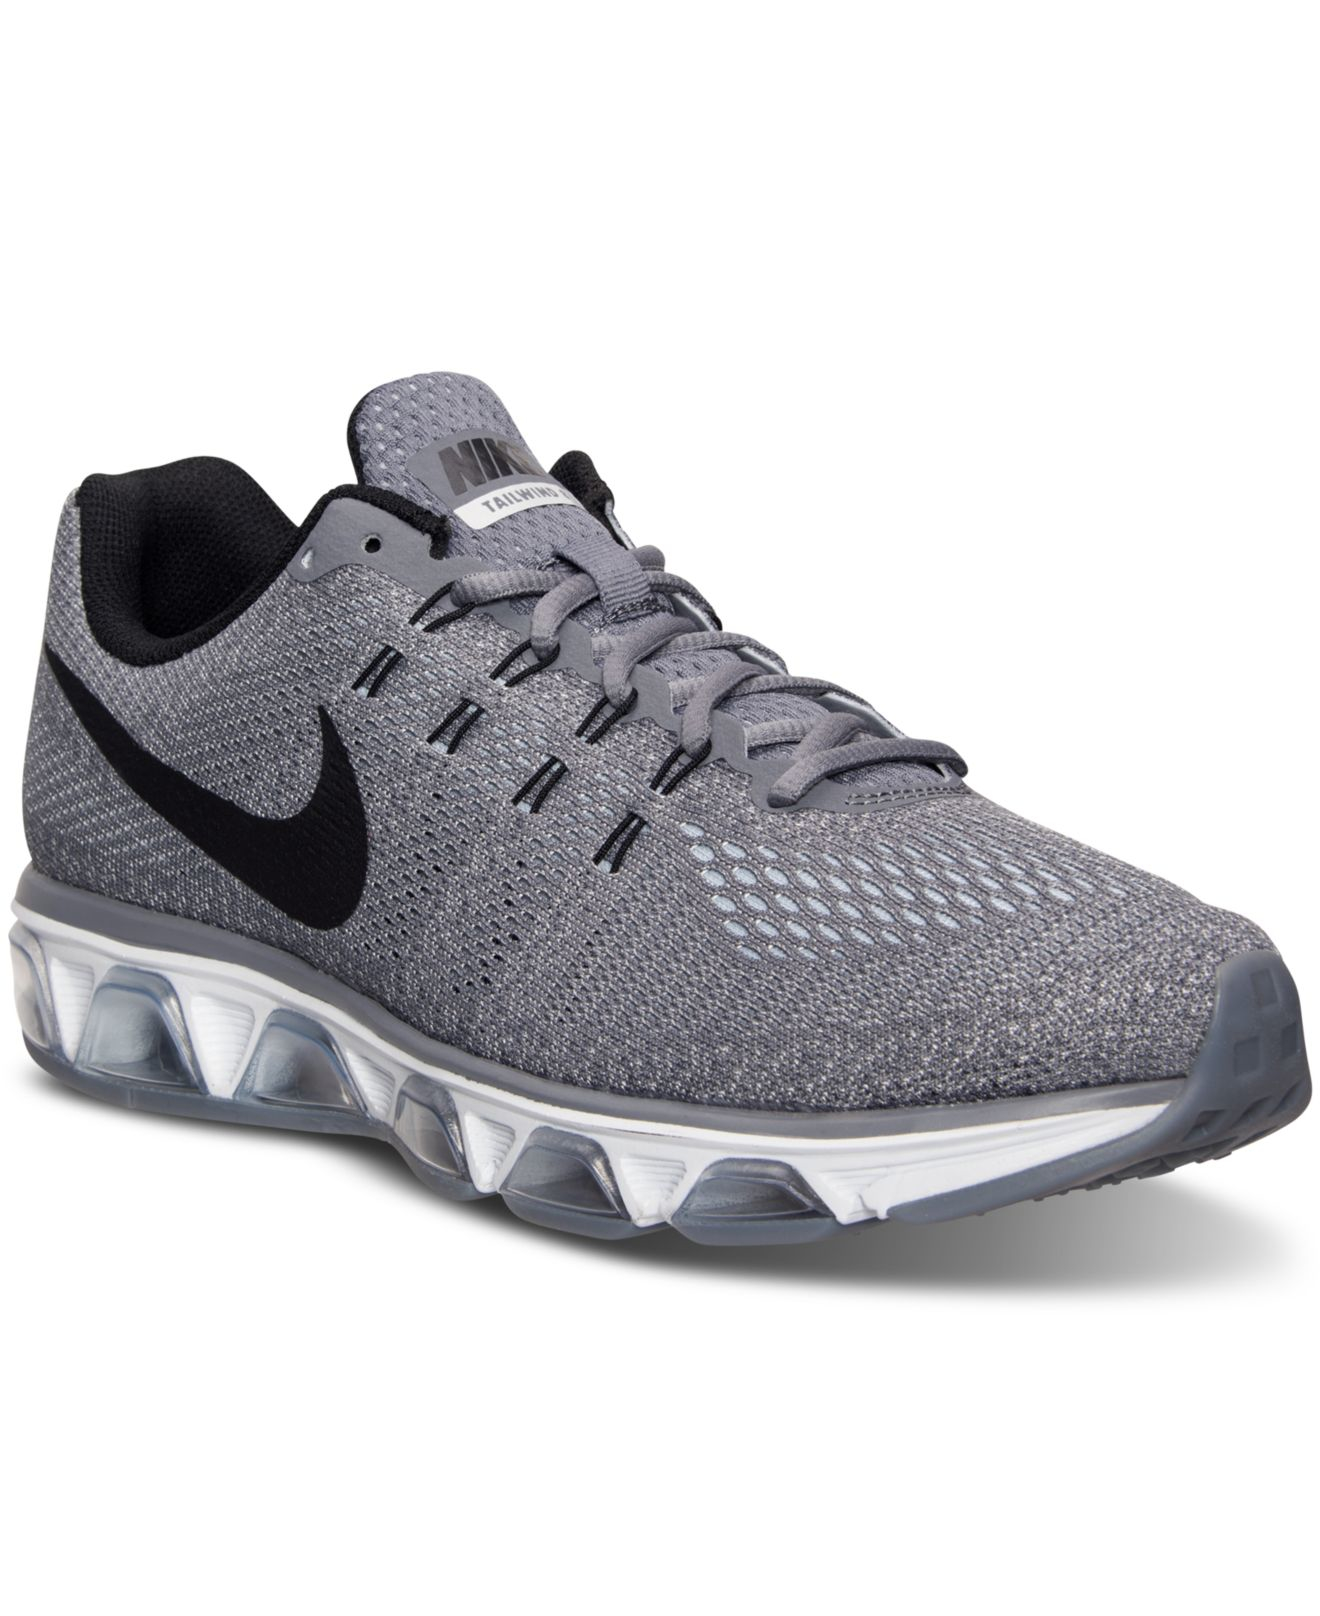 timeless design b4d51 63ba3 nikemax tailwind 7 sneaker  lyst nike mens air max tailwind 8 running  sneakers from finish